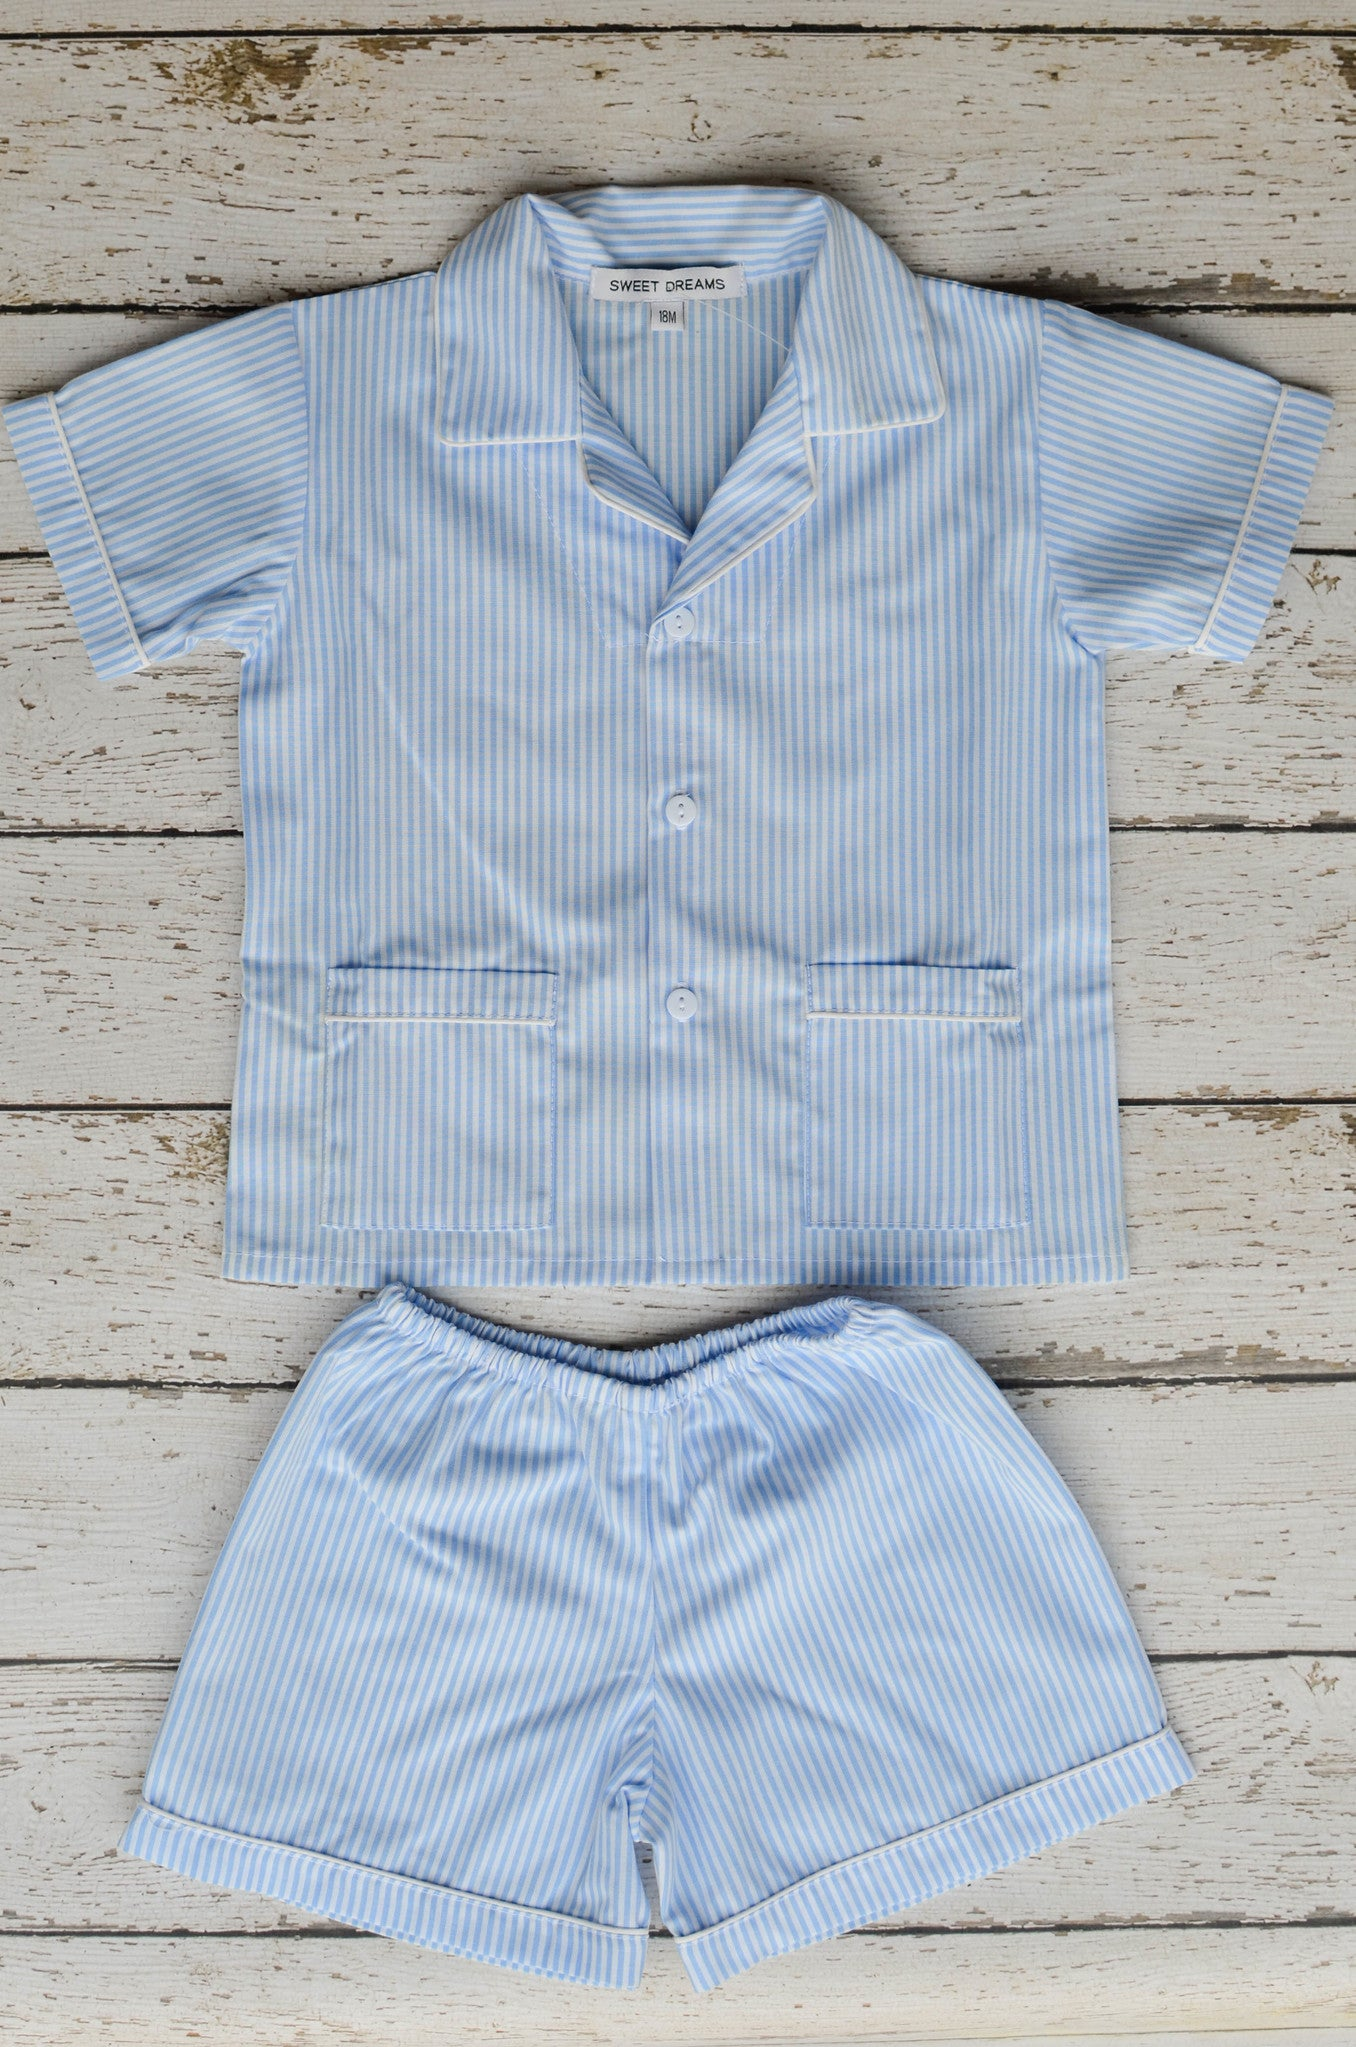 Shortsleeve Blue Stripe Pajamas